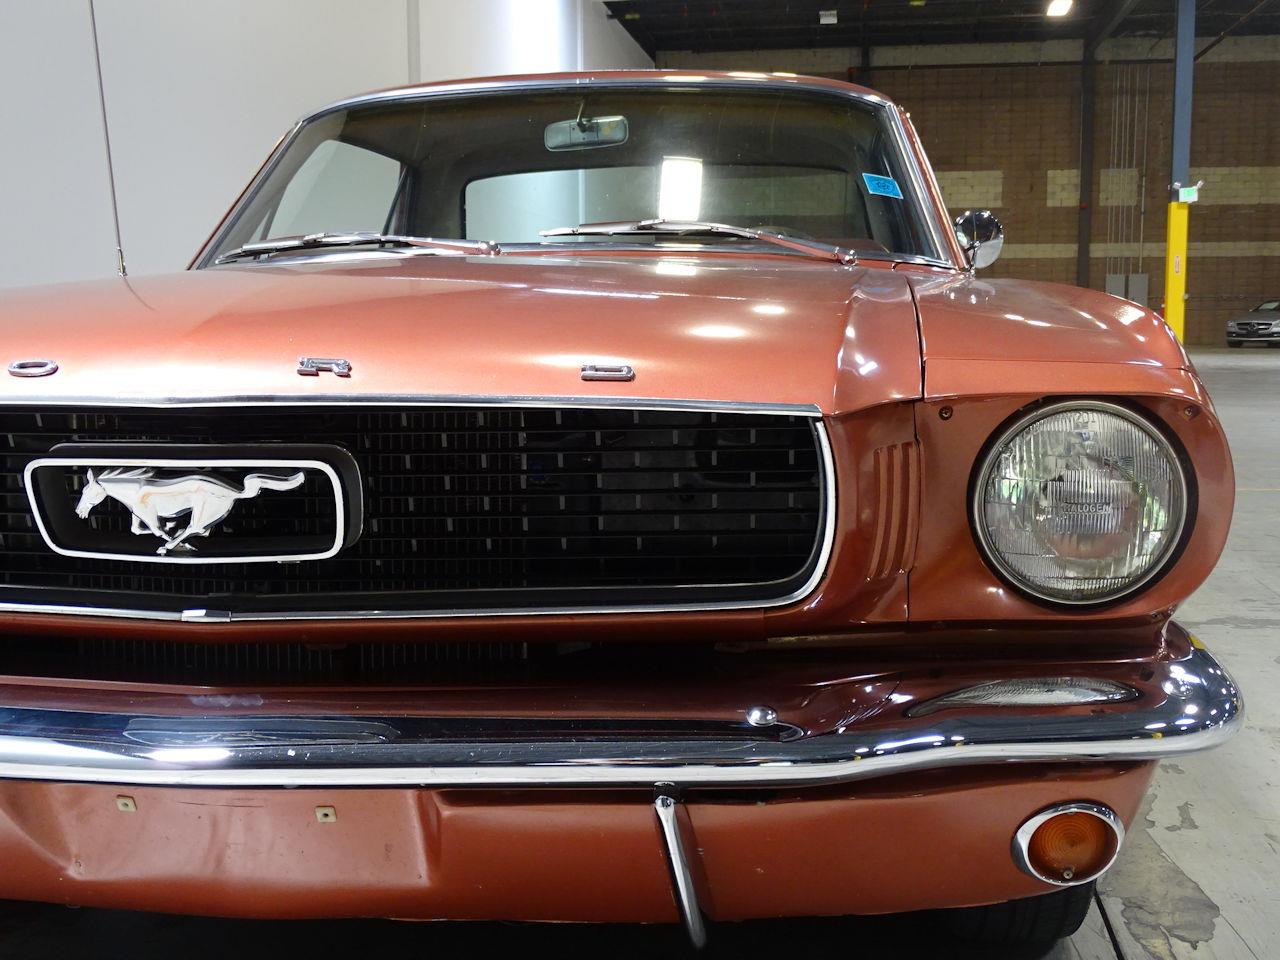 Large Picture of Classic '66 Ford Mustang - $19,995.00 Offered by Gateway Classic Cars - Philadelphia - LF3T